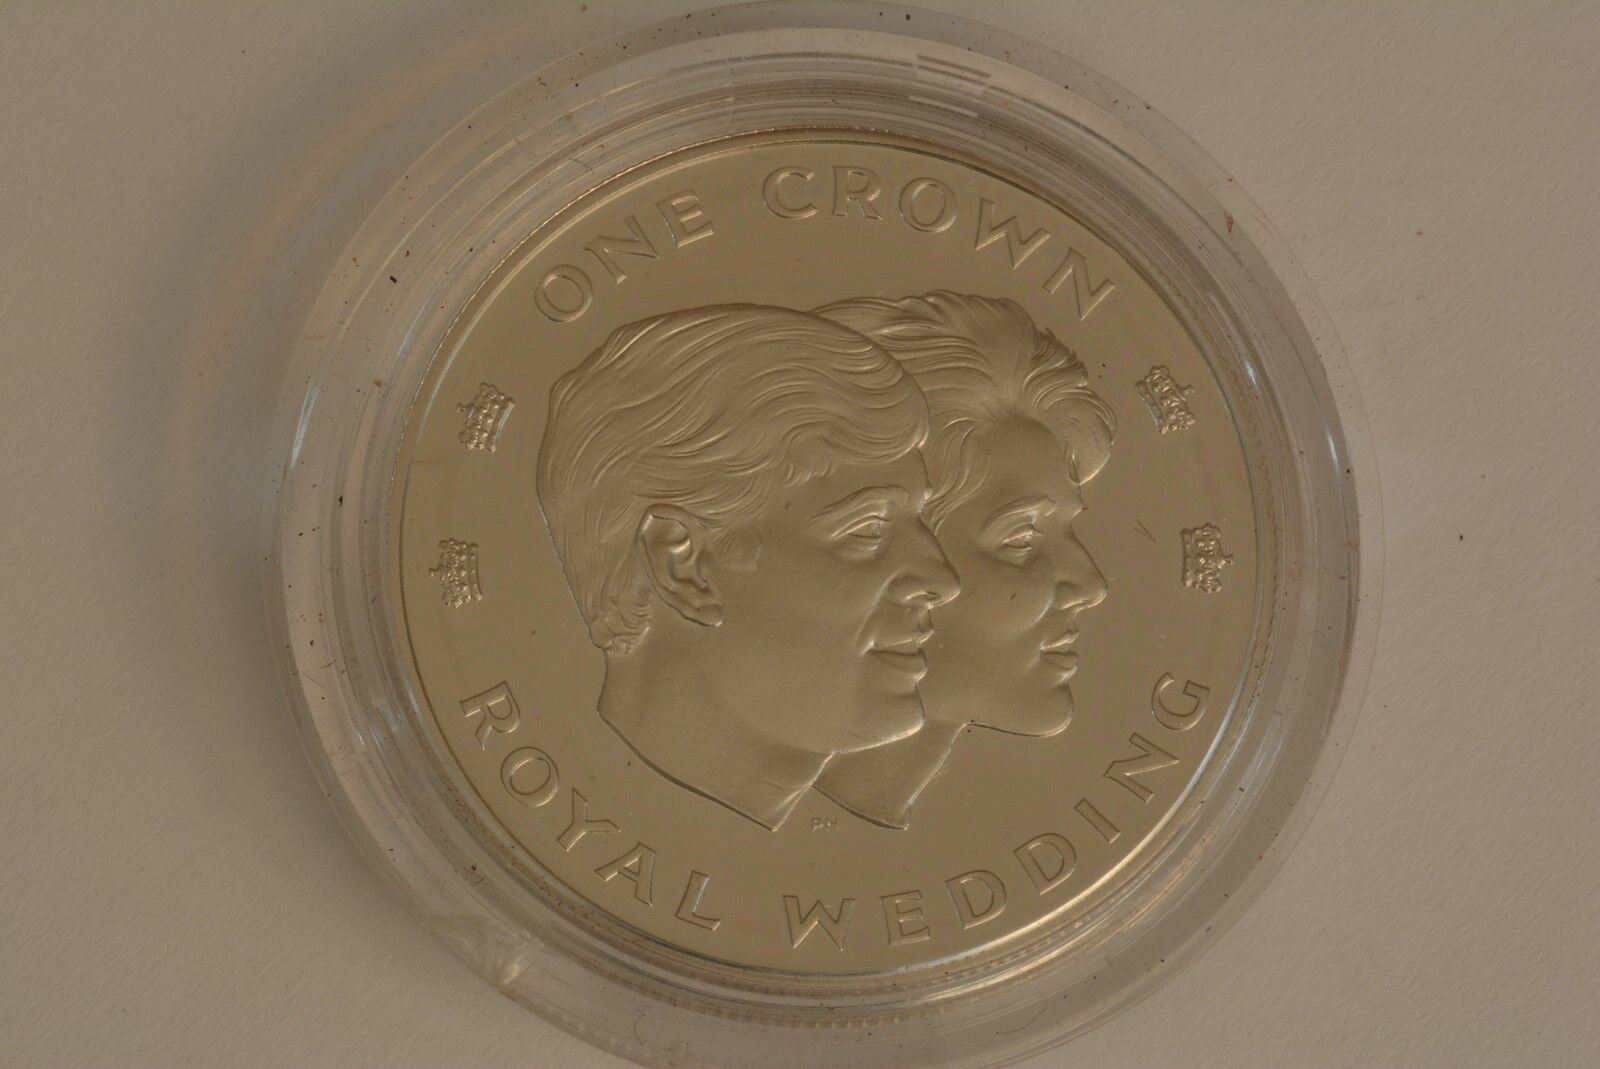 1986 Turks and Caicos Islands Royal Wedding One Crown coin